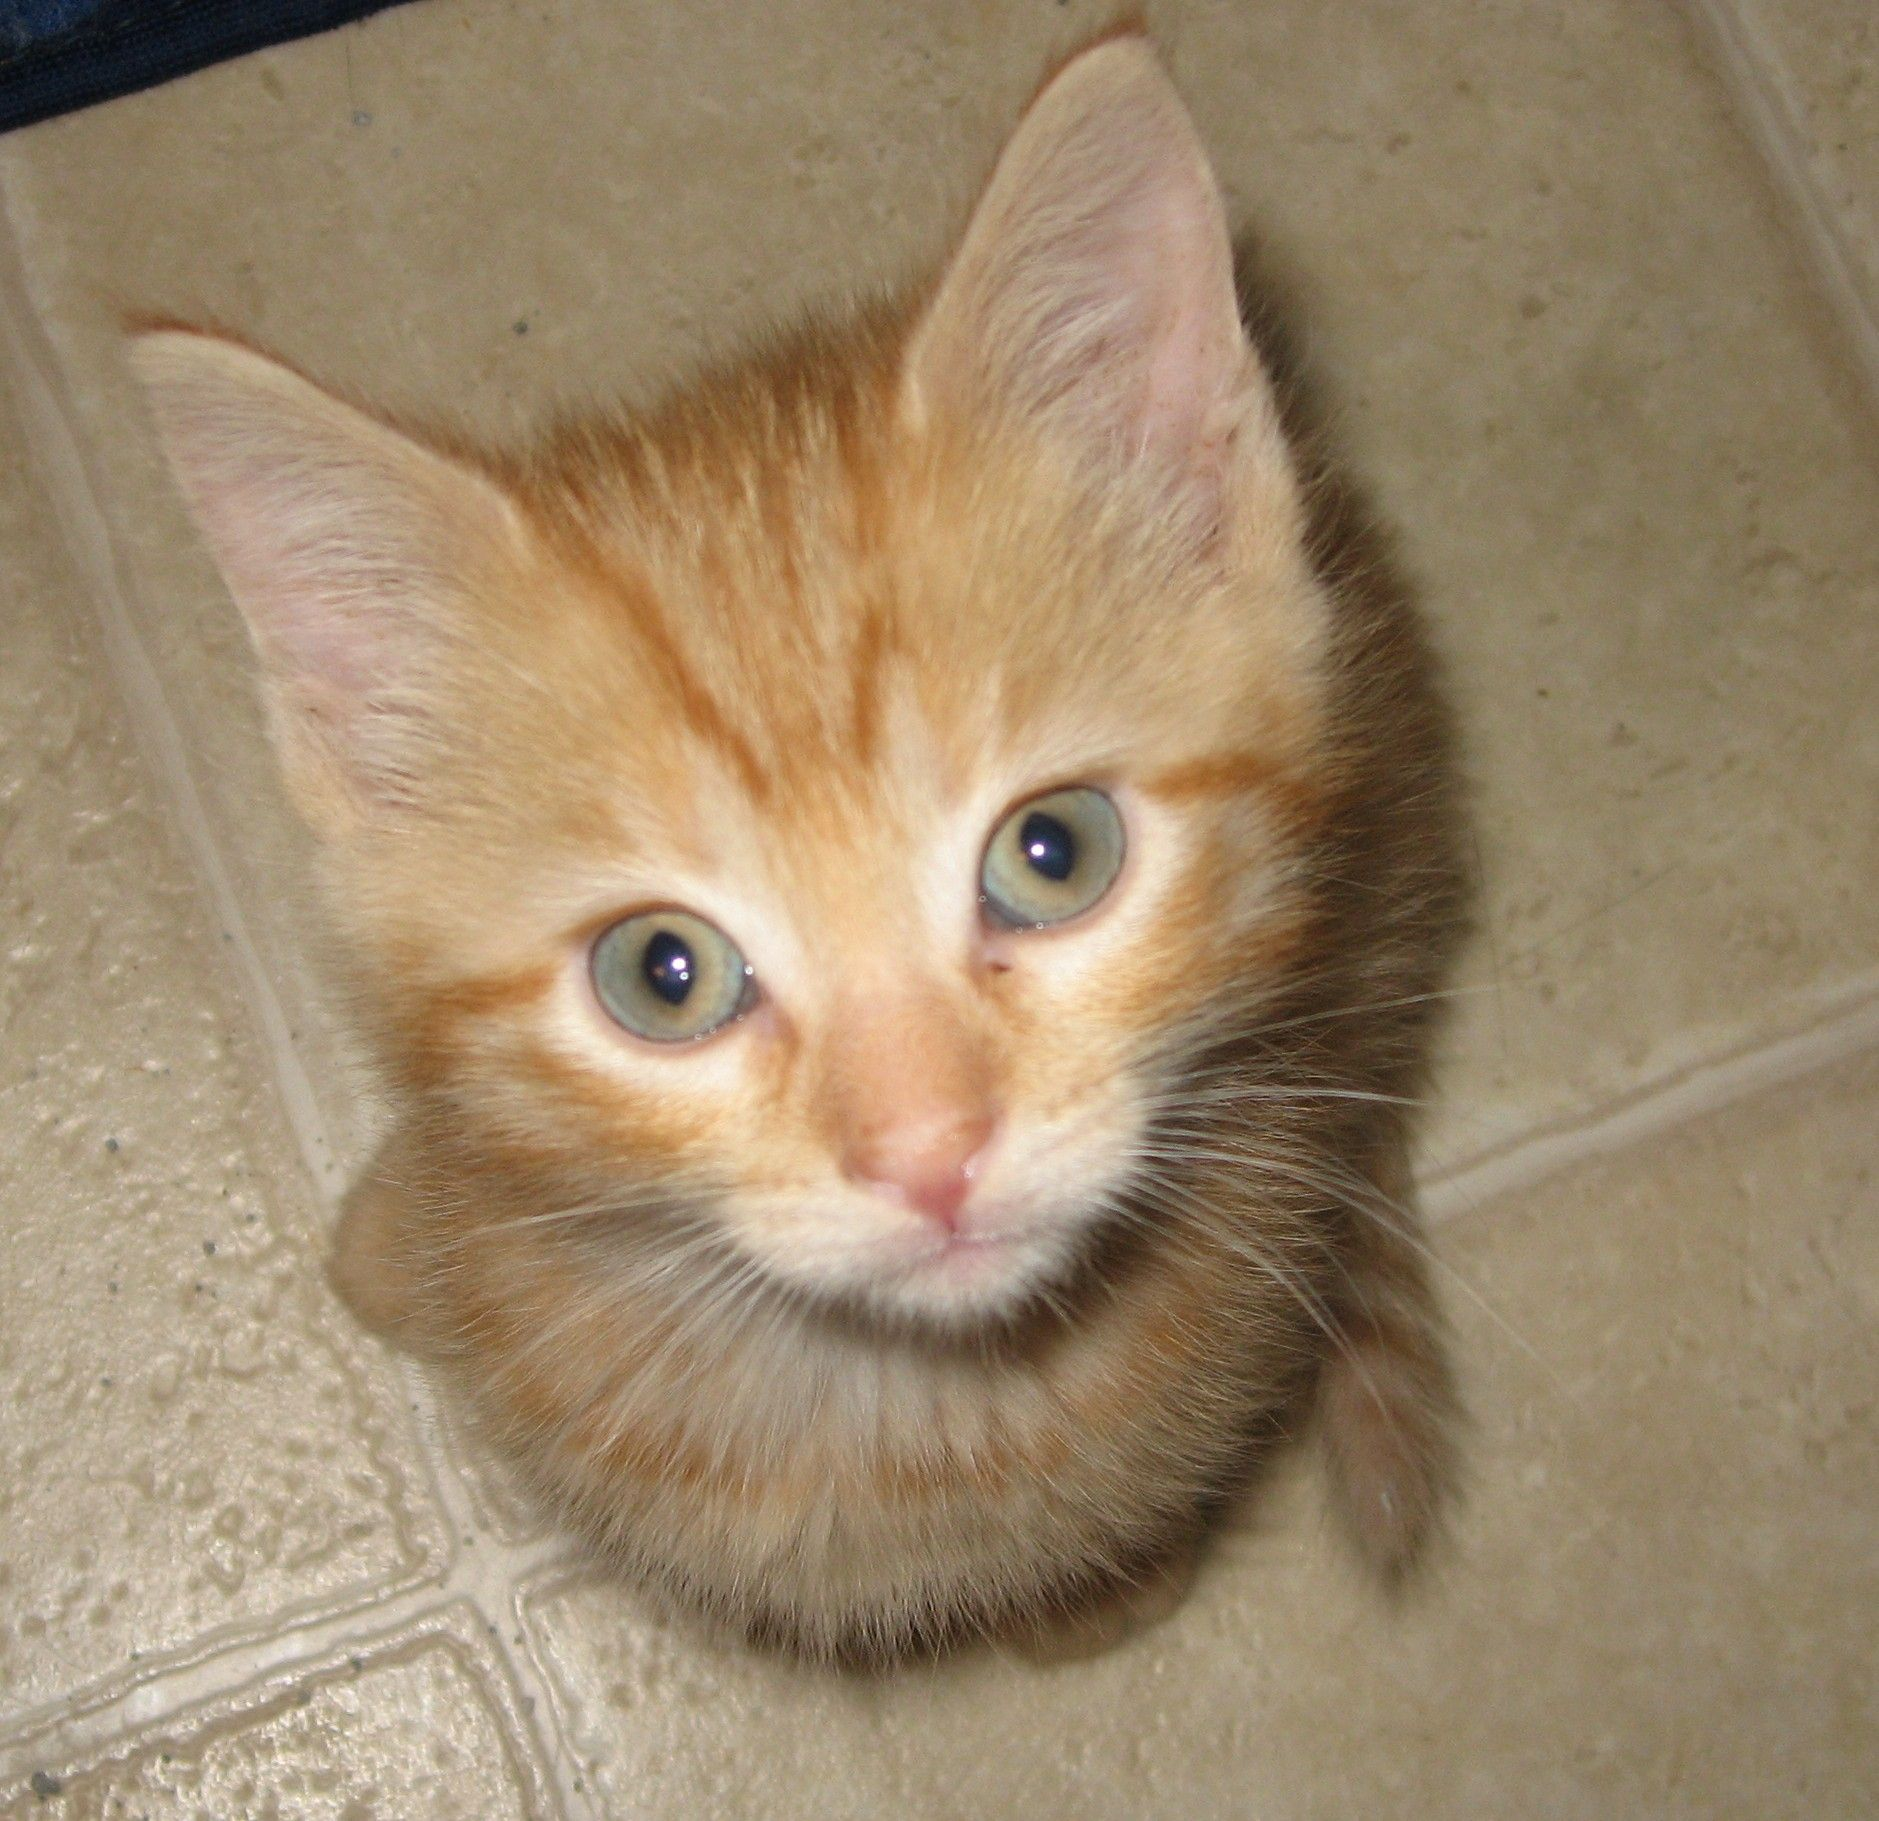 Sunshine is a female 8 week old Orange Tabby medium haired kitten